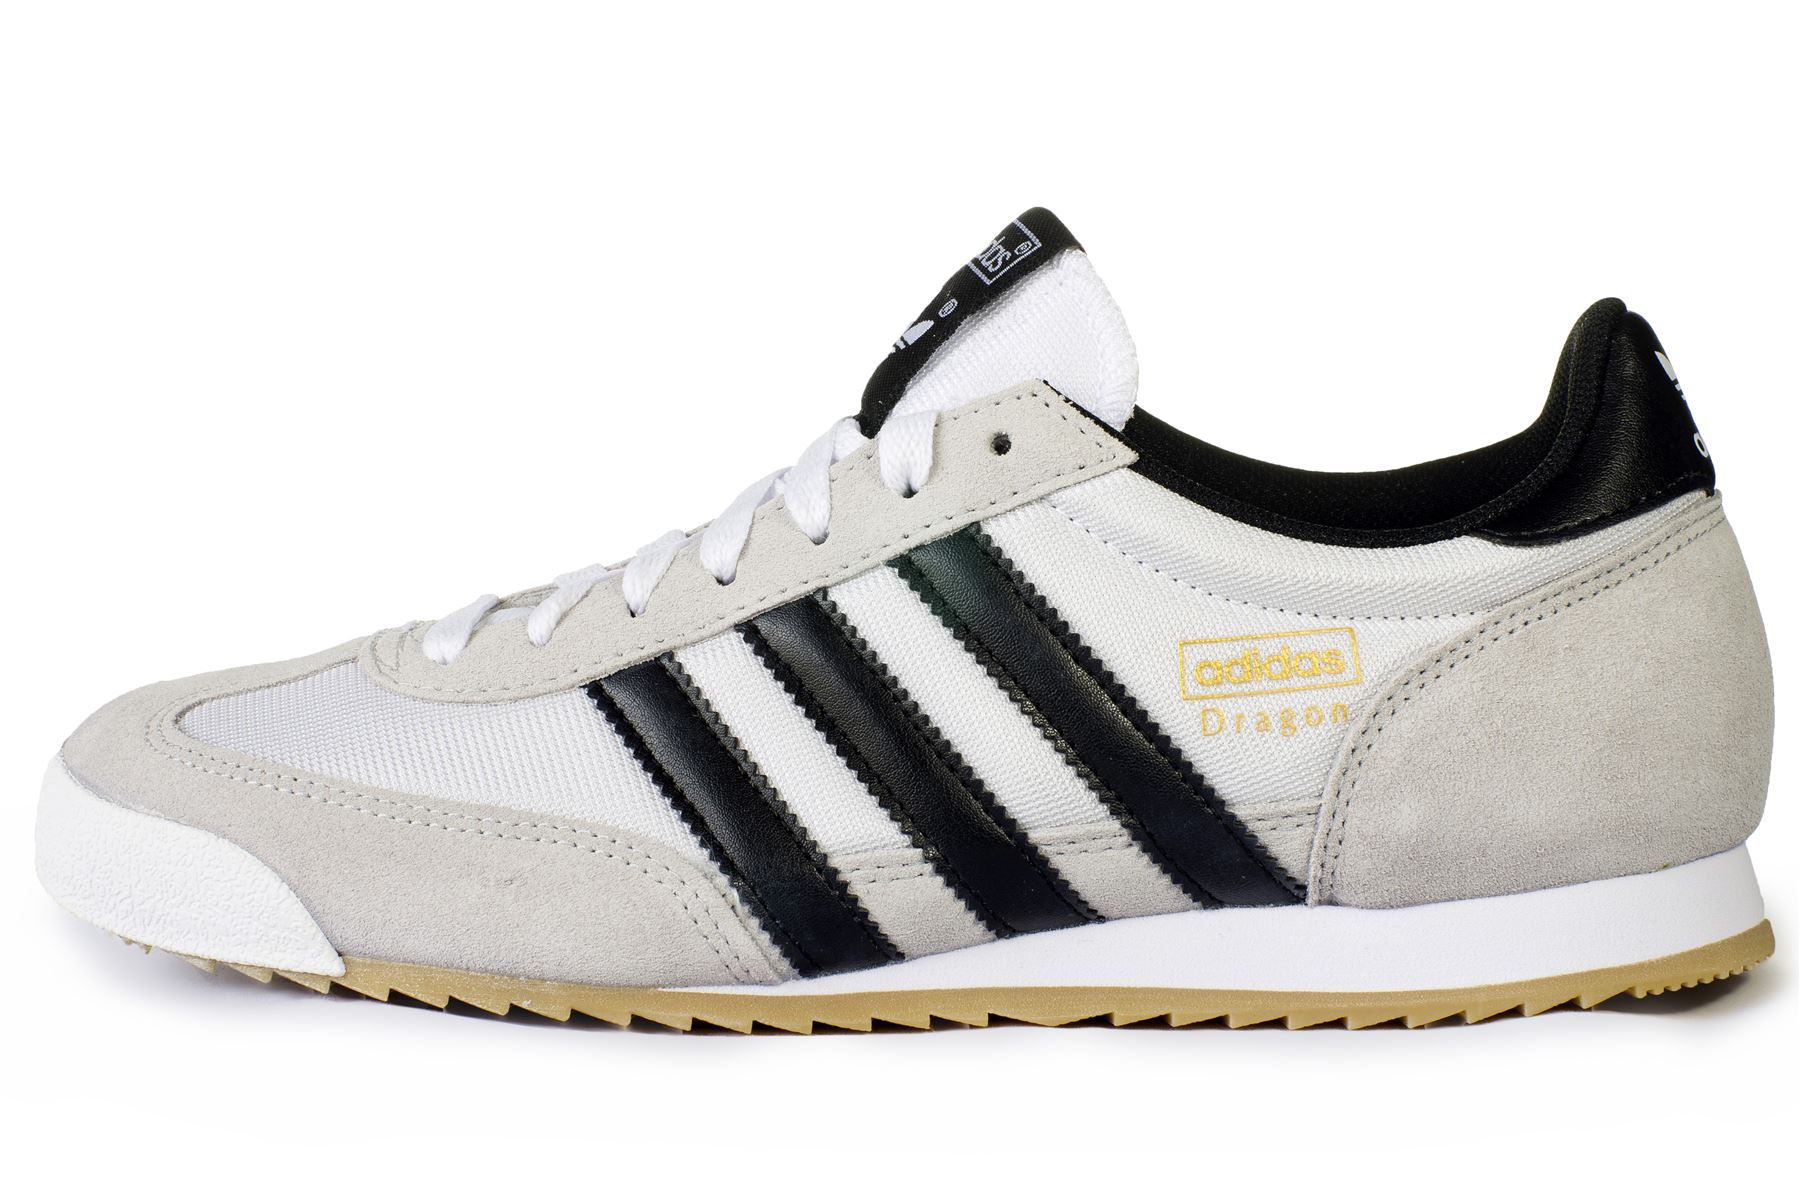 adidas dragon bianche pelle